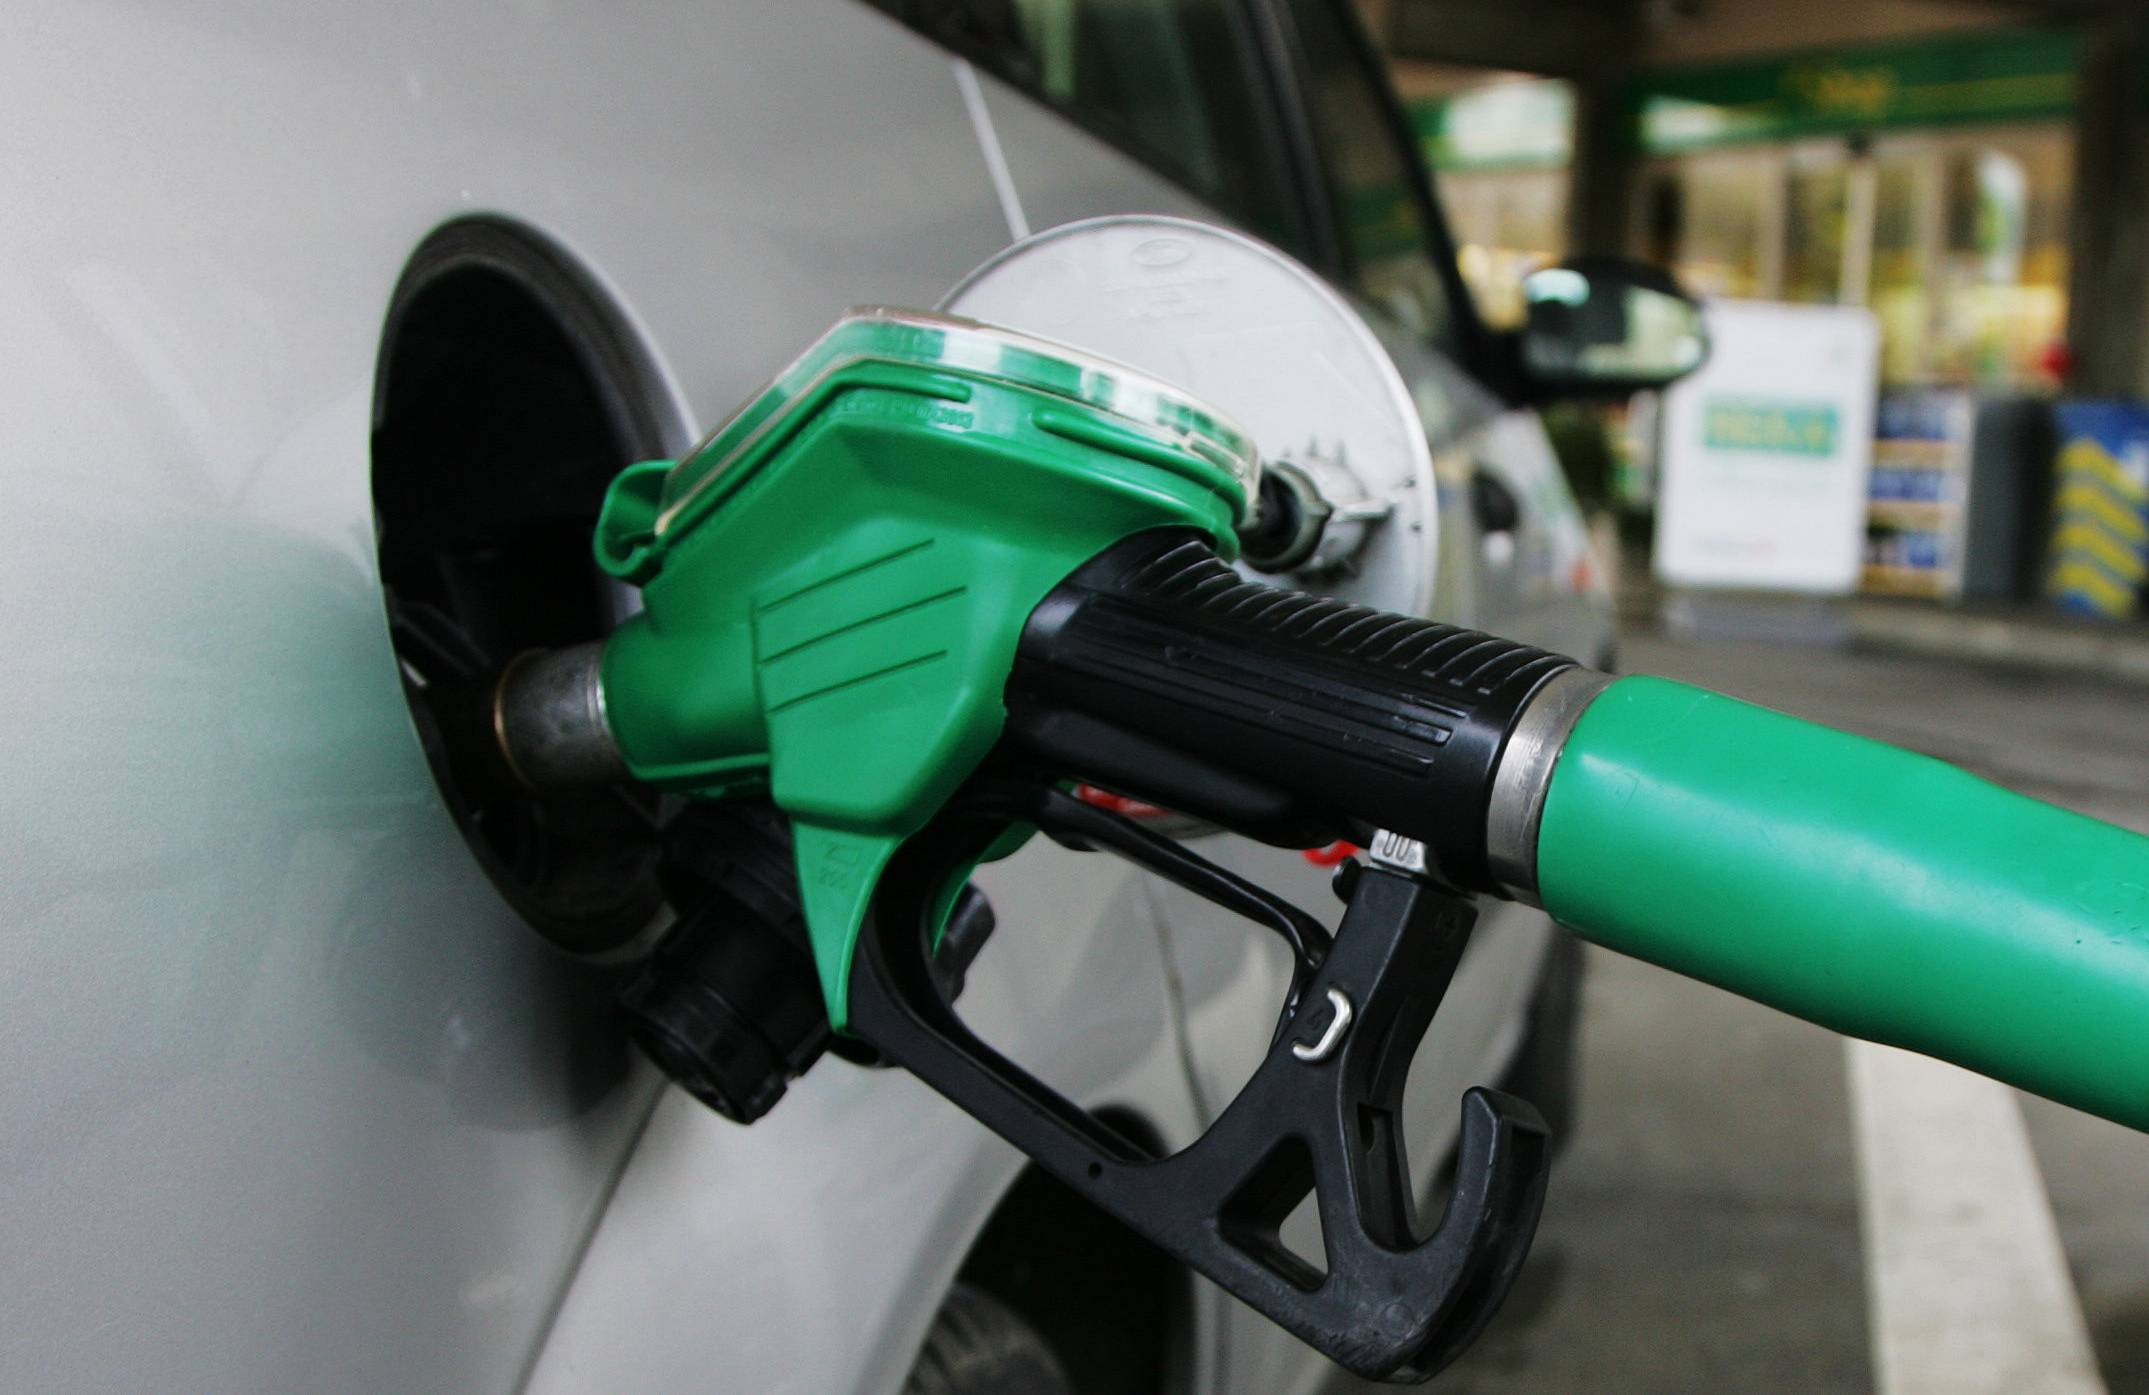 UAE raises fuel prices